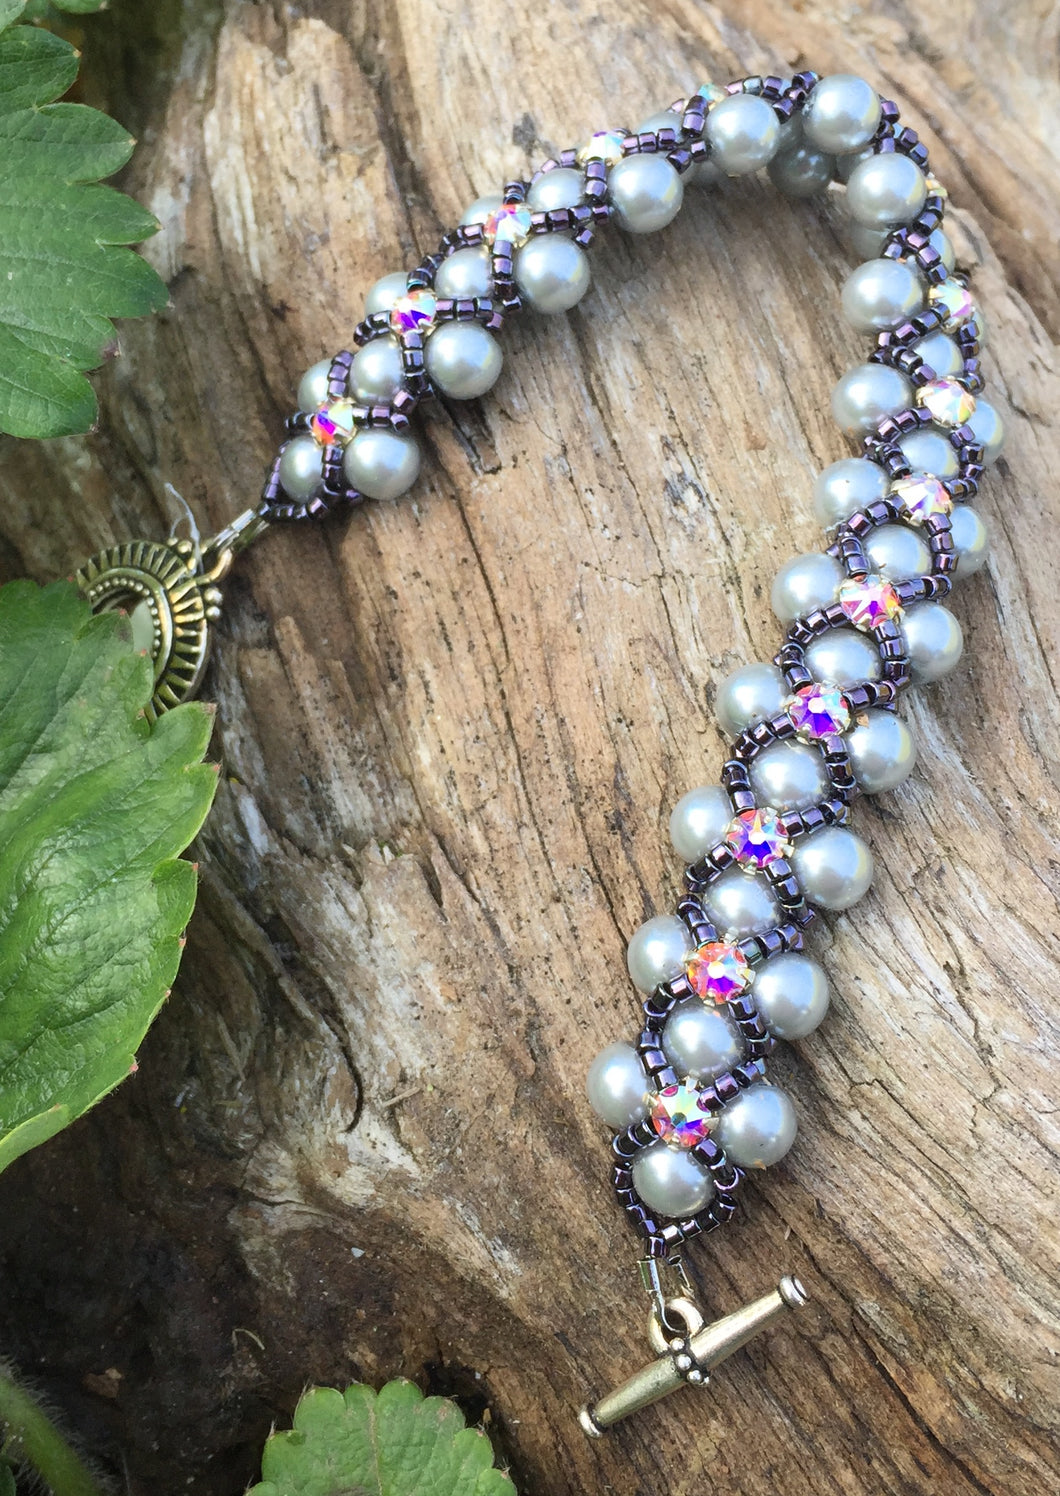 This Silver glass pearl and Dark Purple Delica Seed Bead bracelet is topped with Swarovki Crystal Montees and measures 7 1/4